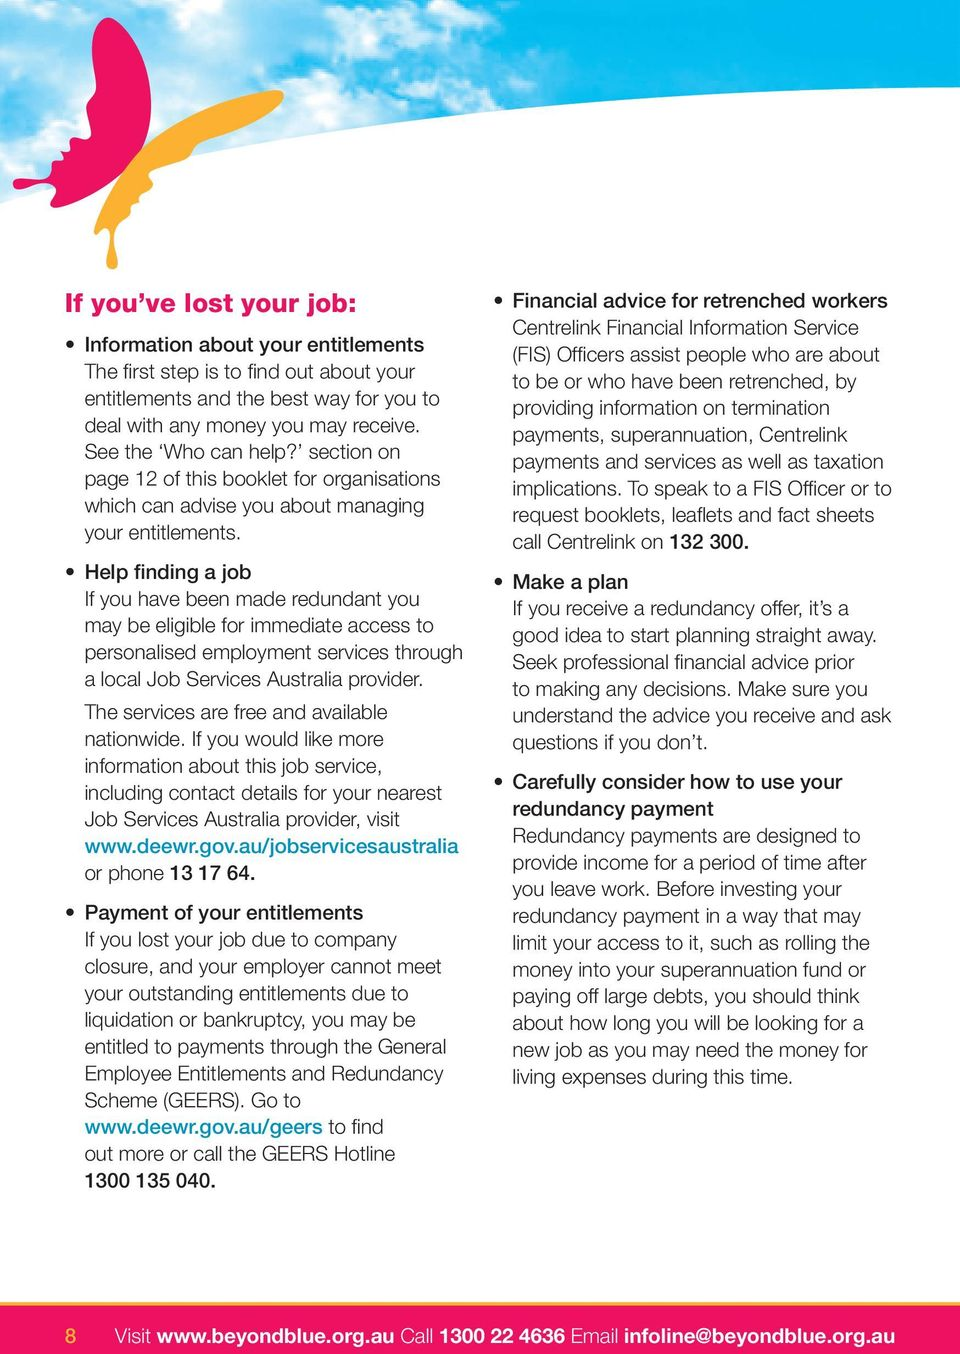 Help finding a job If you have been made redundant you may be eligible for immediate access to personalised employment services through a local Job Services Australia provider.